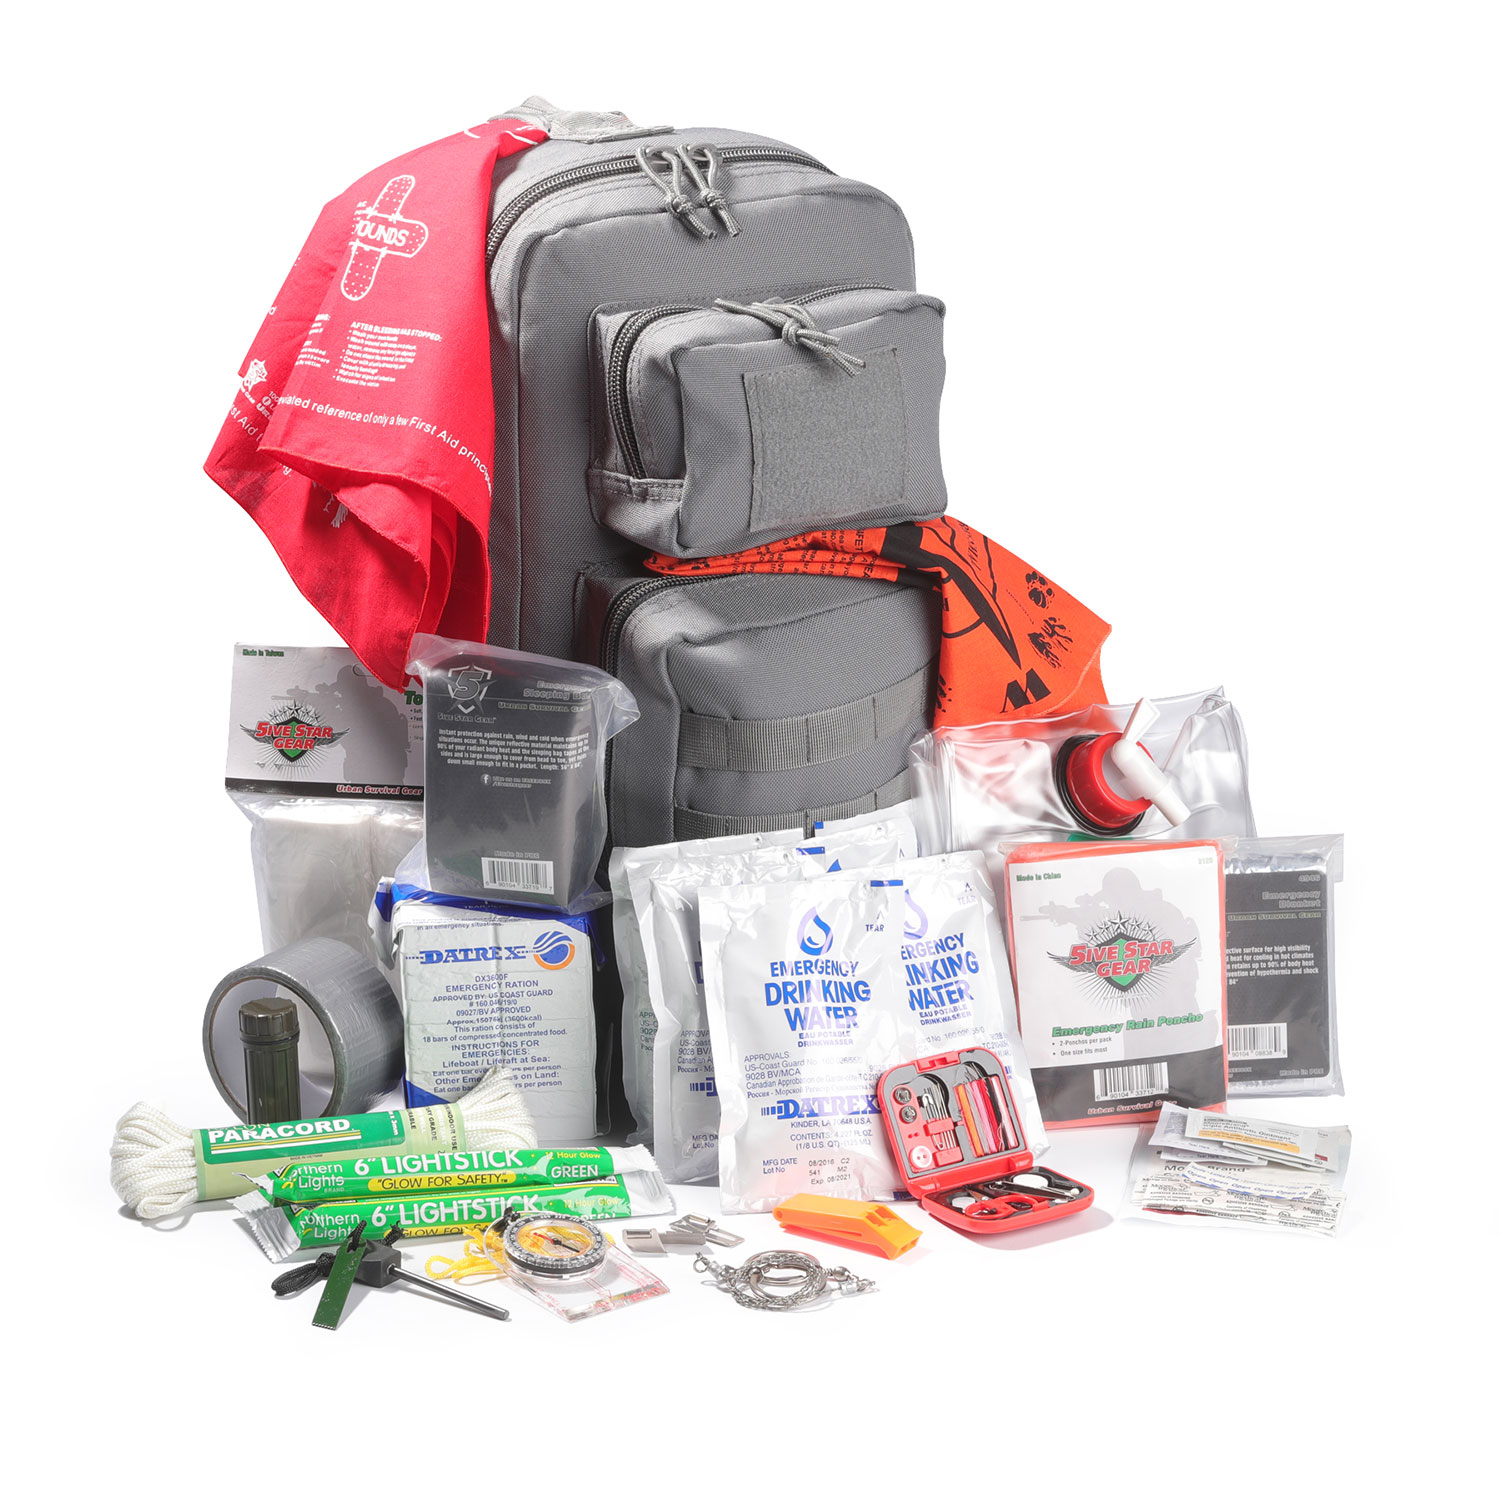 5ive Star Gear Bug-Out Bag Kit